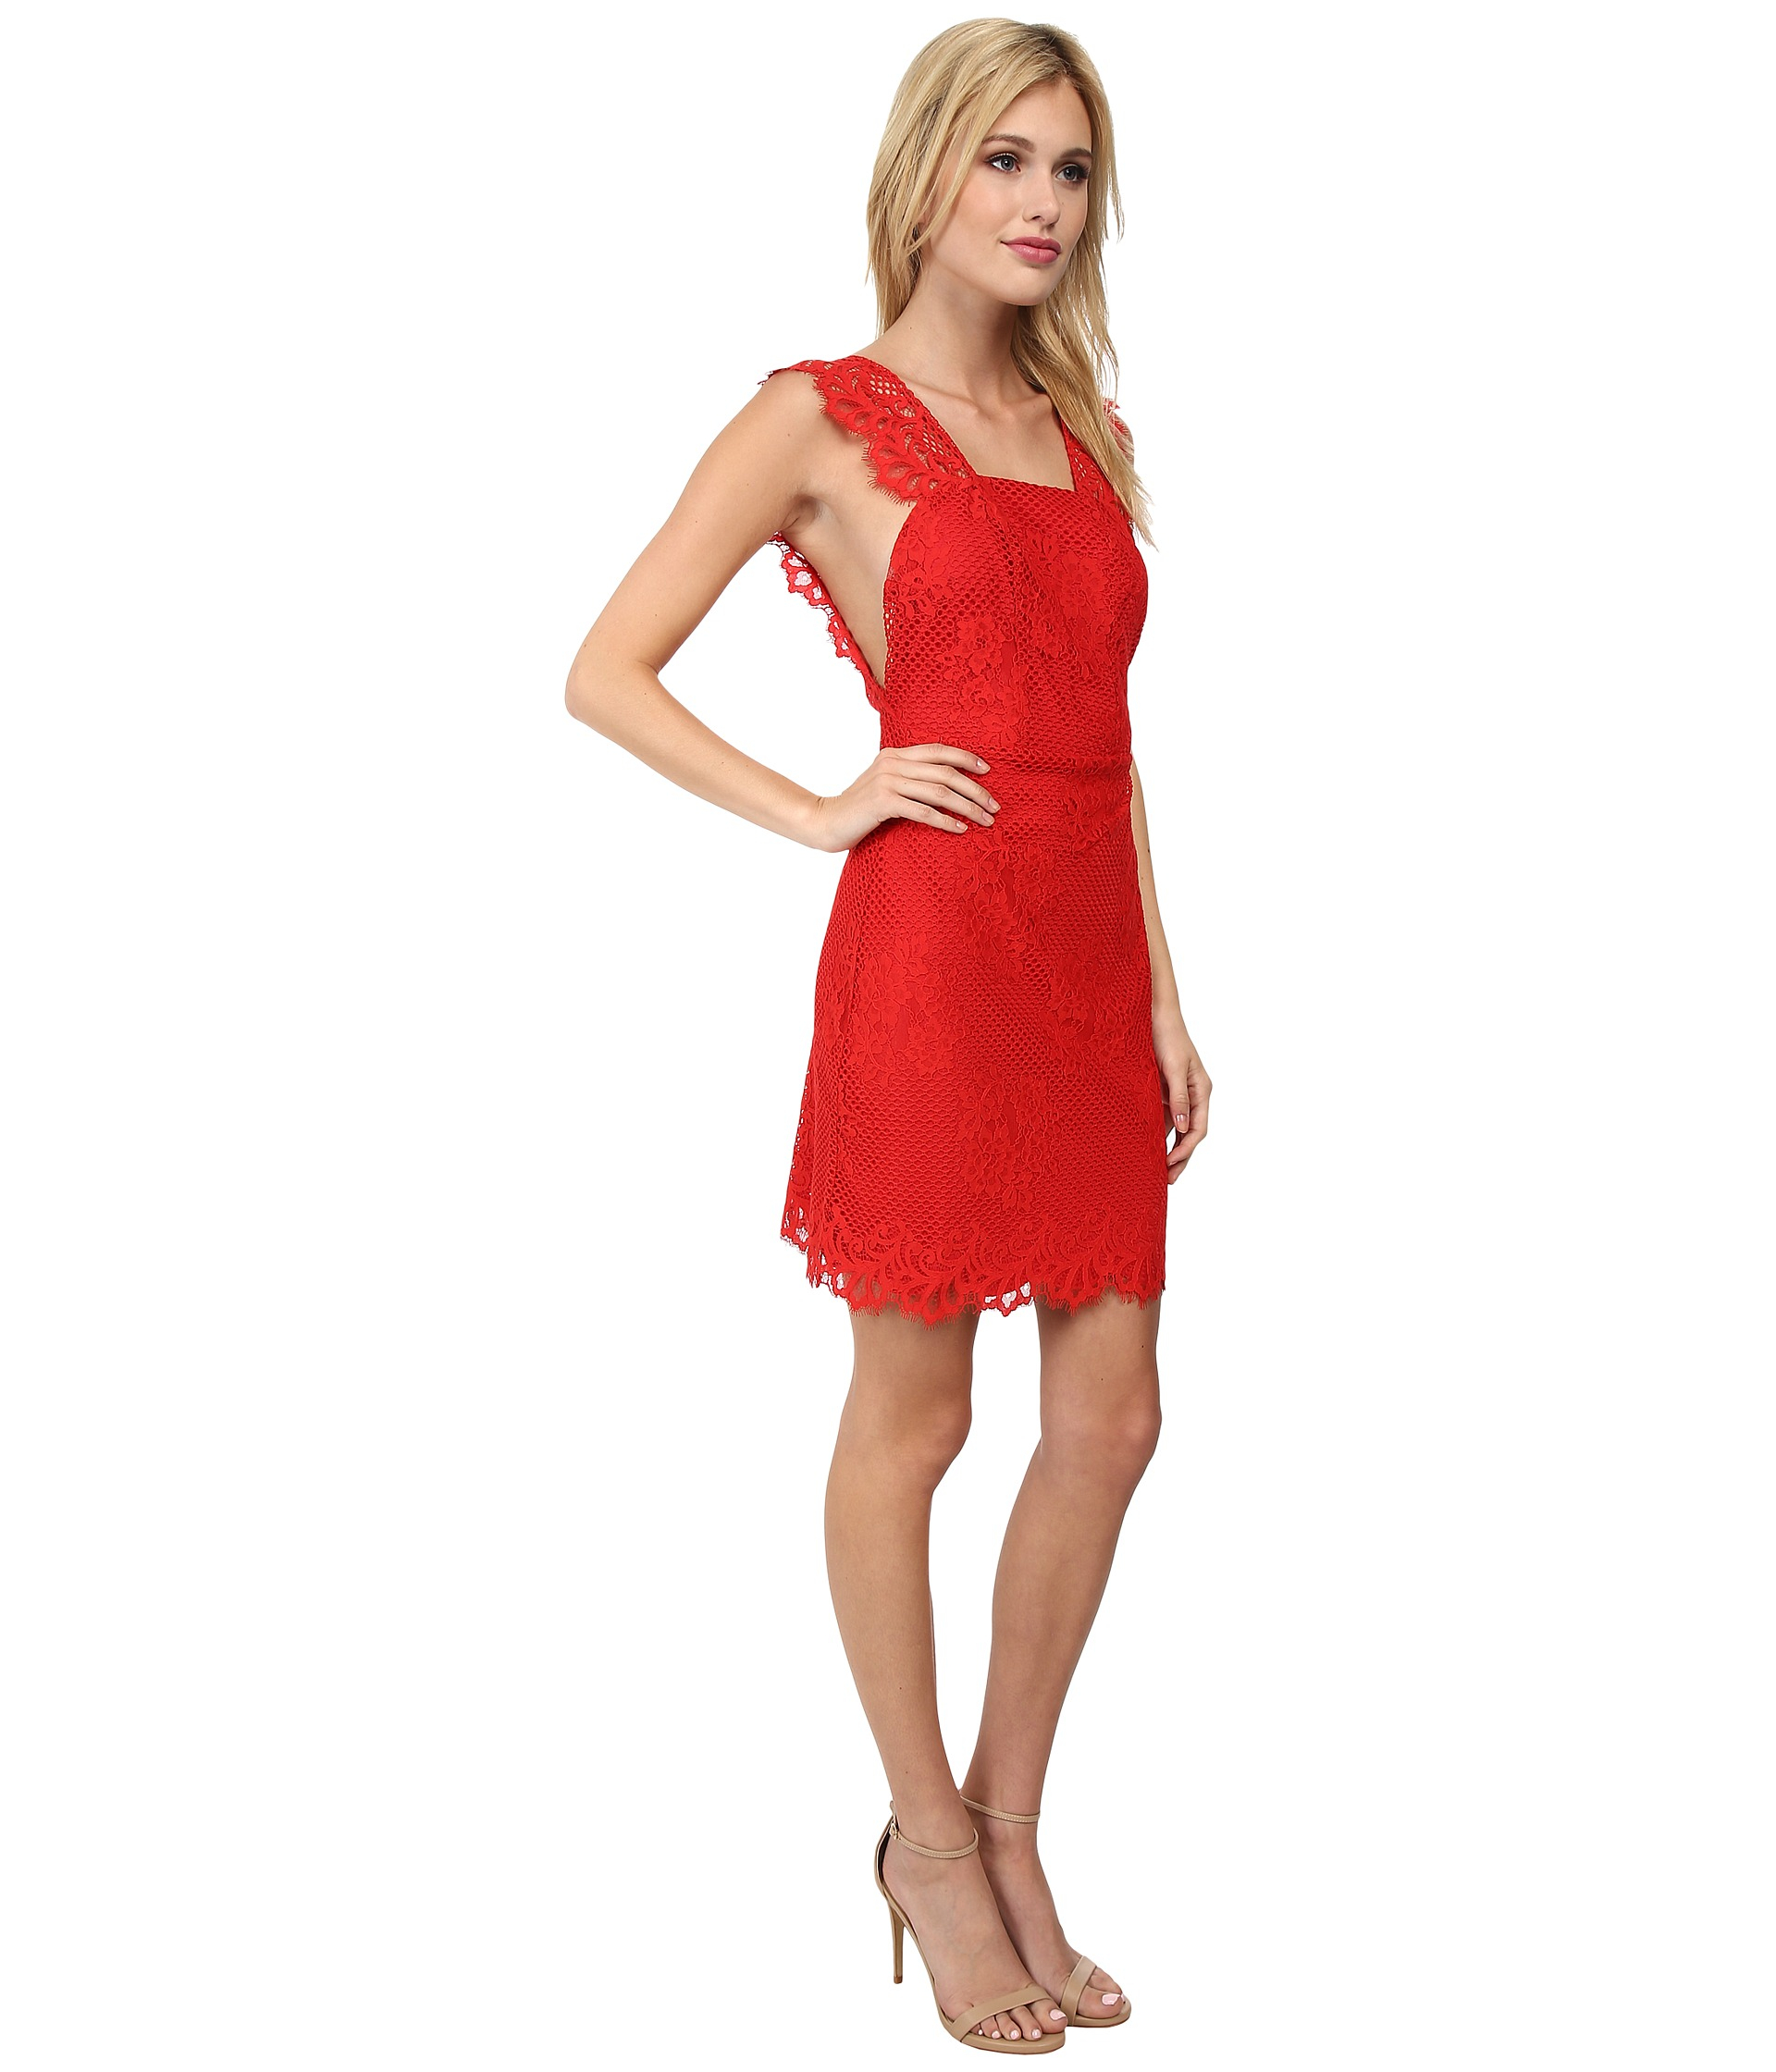 b5a94ec2a2 For Love   Lemons Tiki Bar Cocktail Dress in Red - Lyst